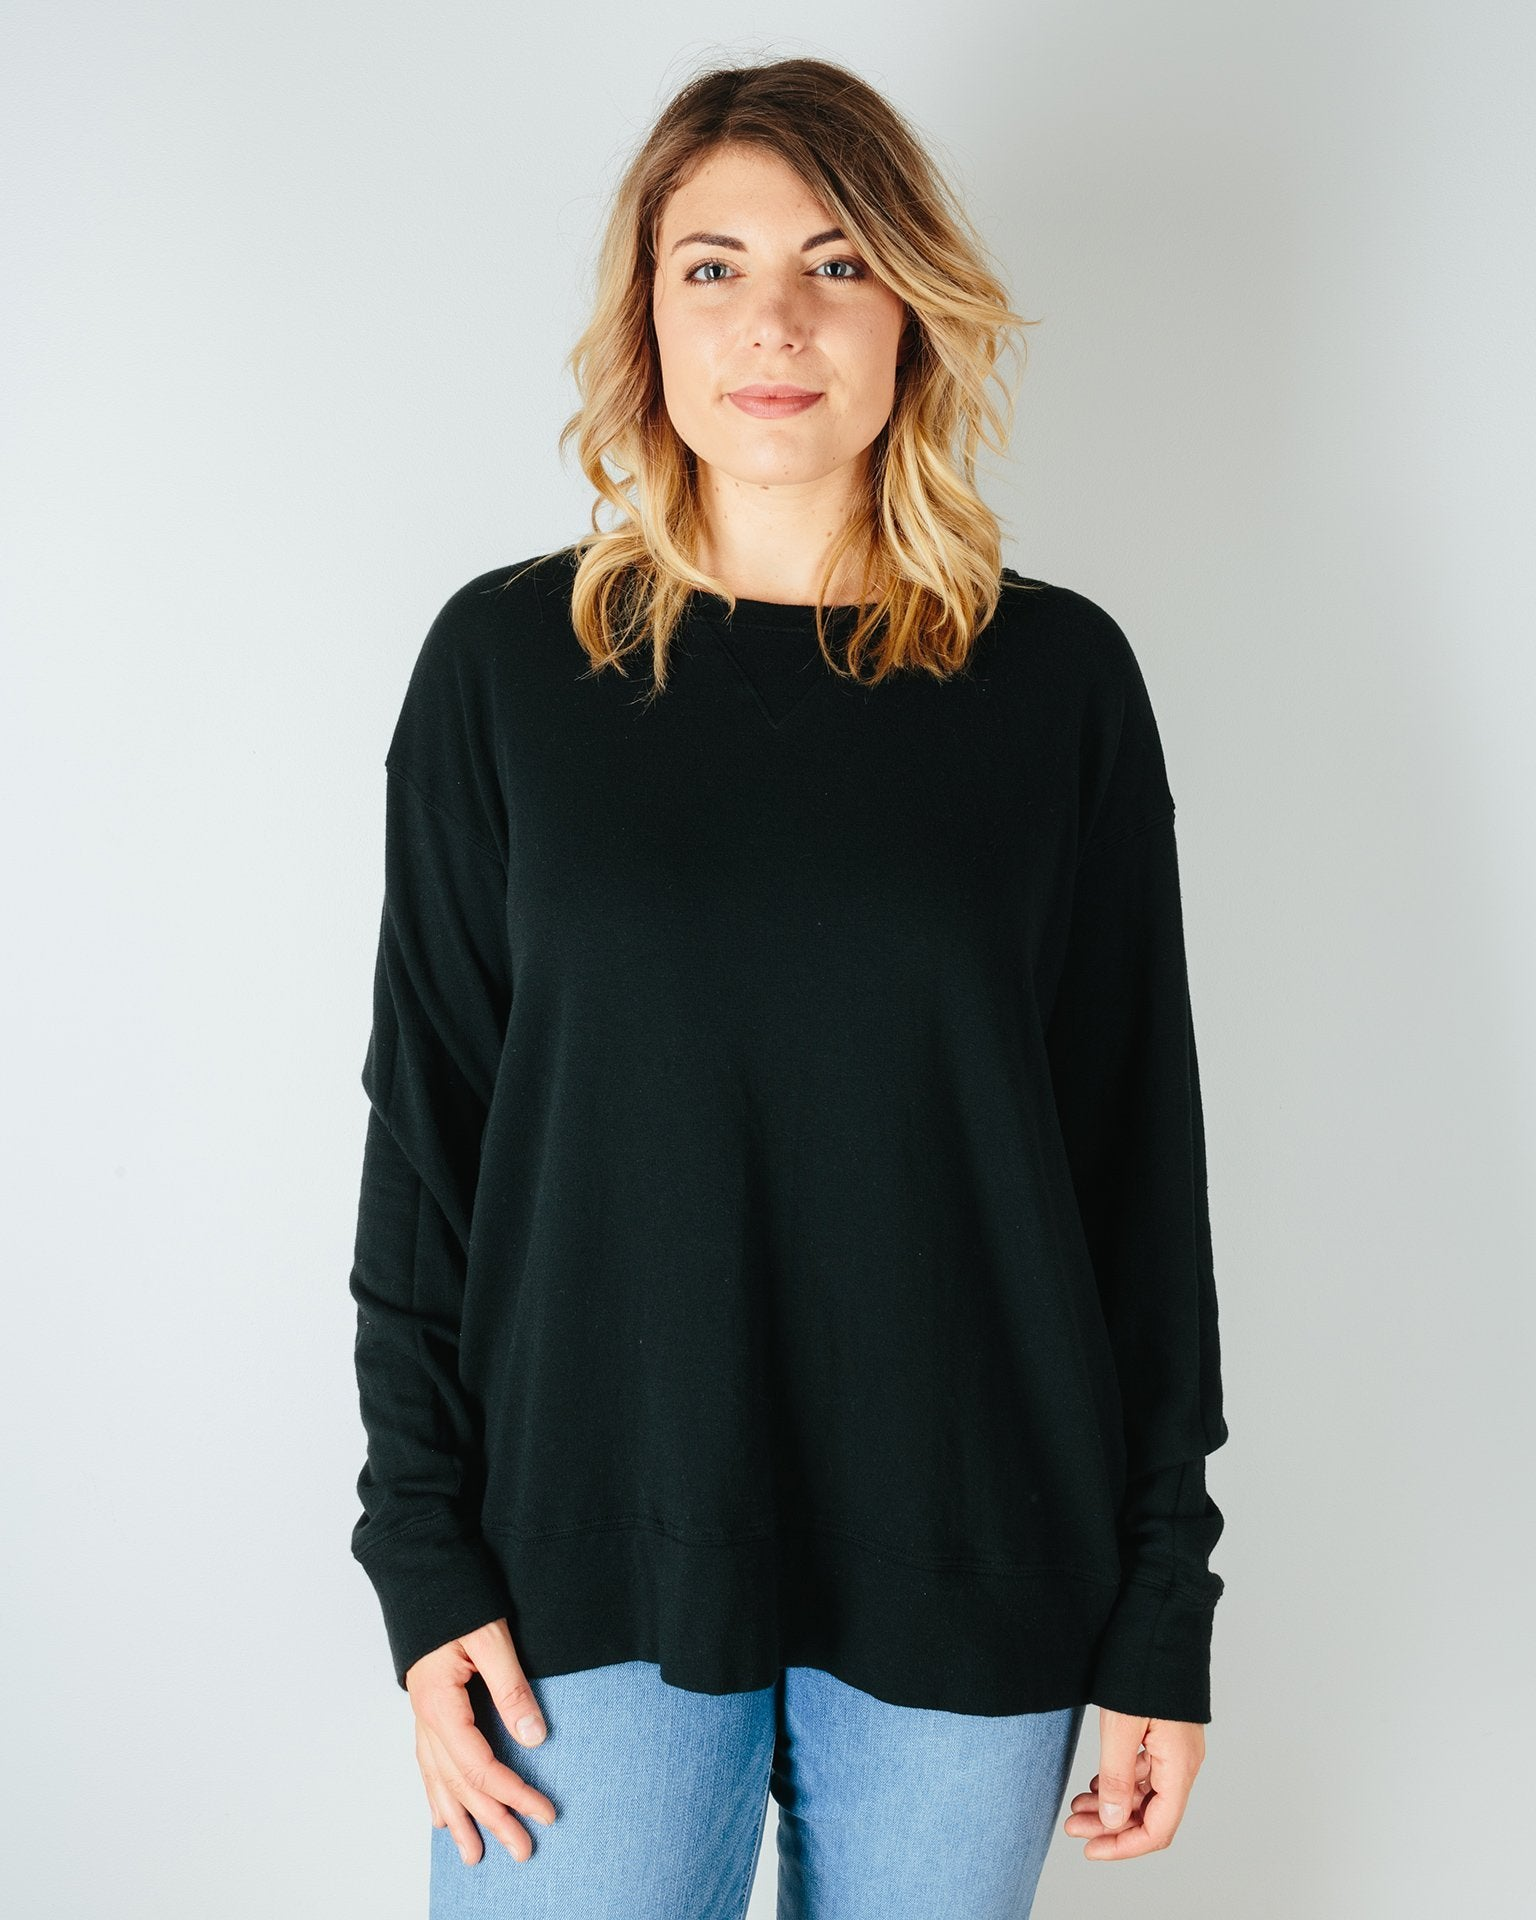 CP Shades Clothing Black / XS Pam Knit Boxy Sweatshirt in Black